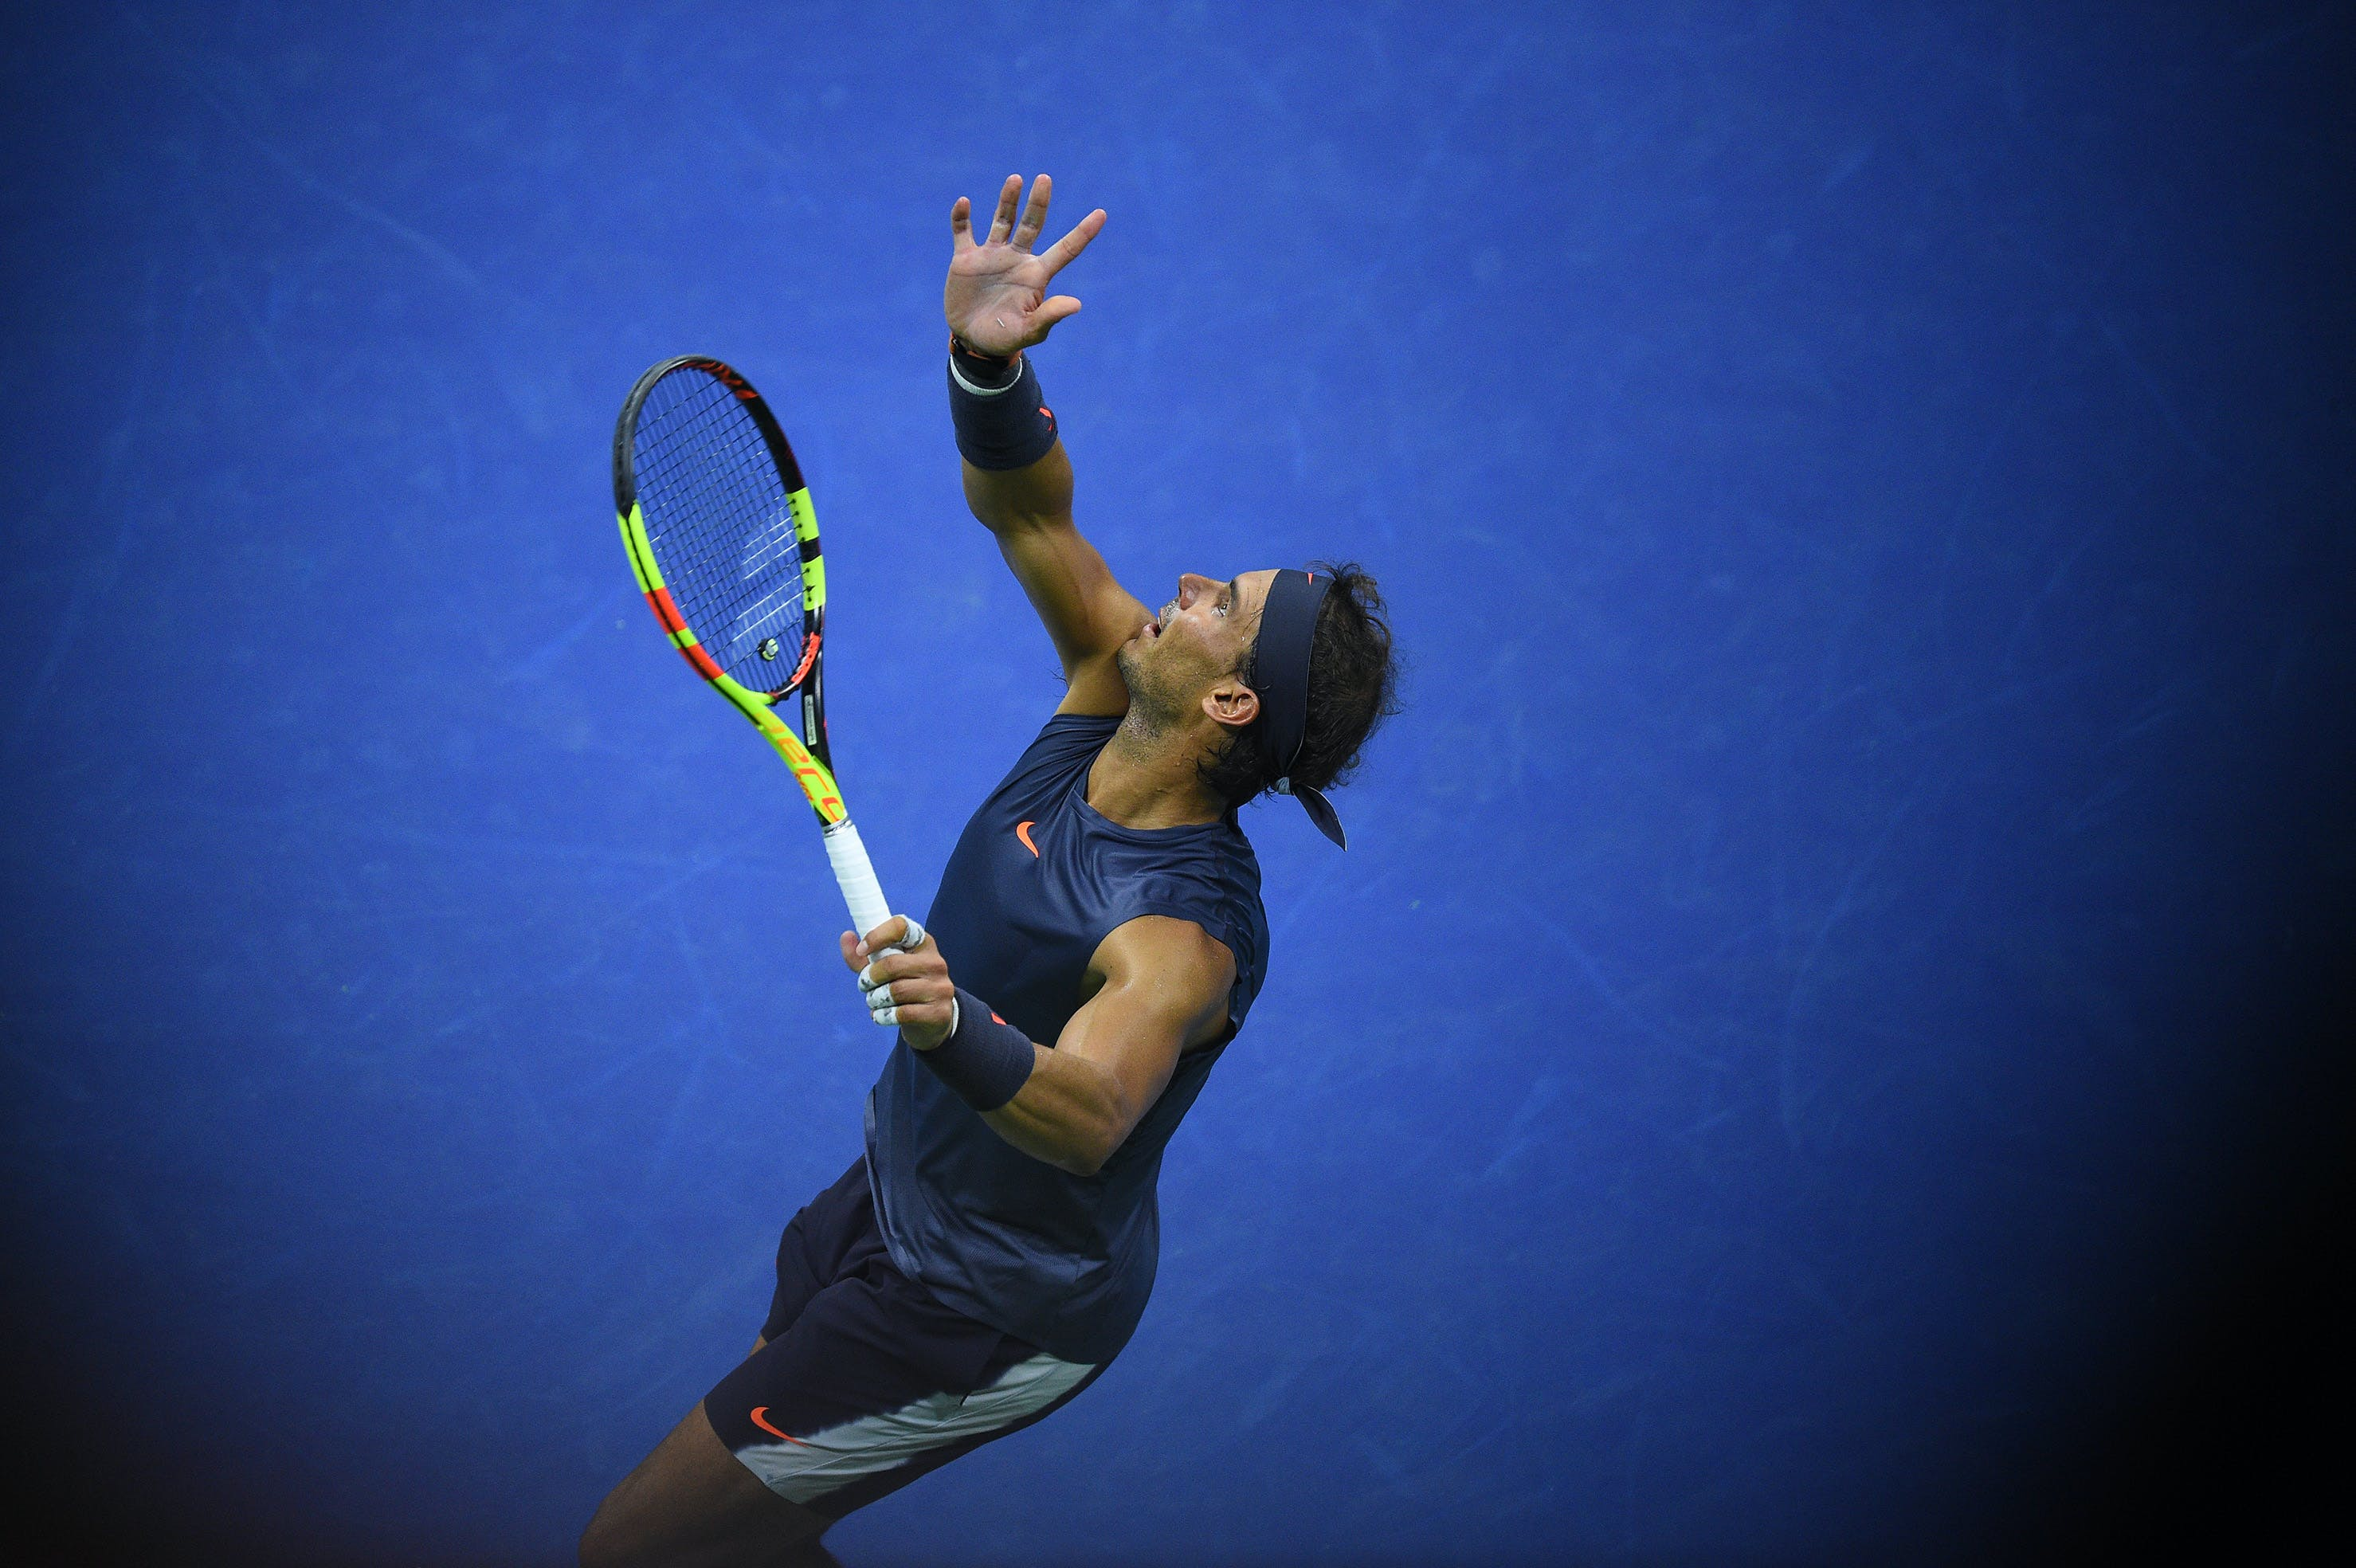 Rafael Nadal serving in the second round of the US Open 2018